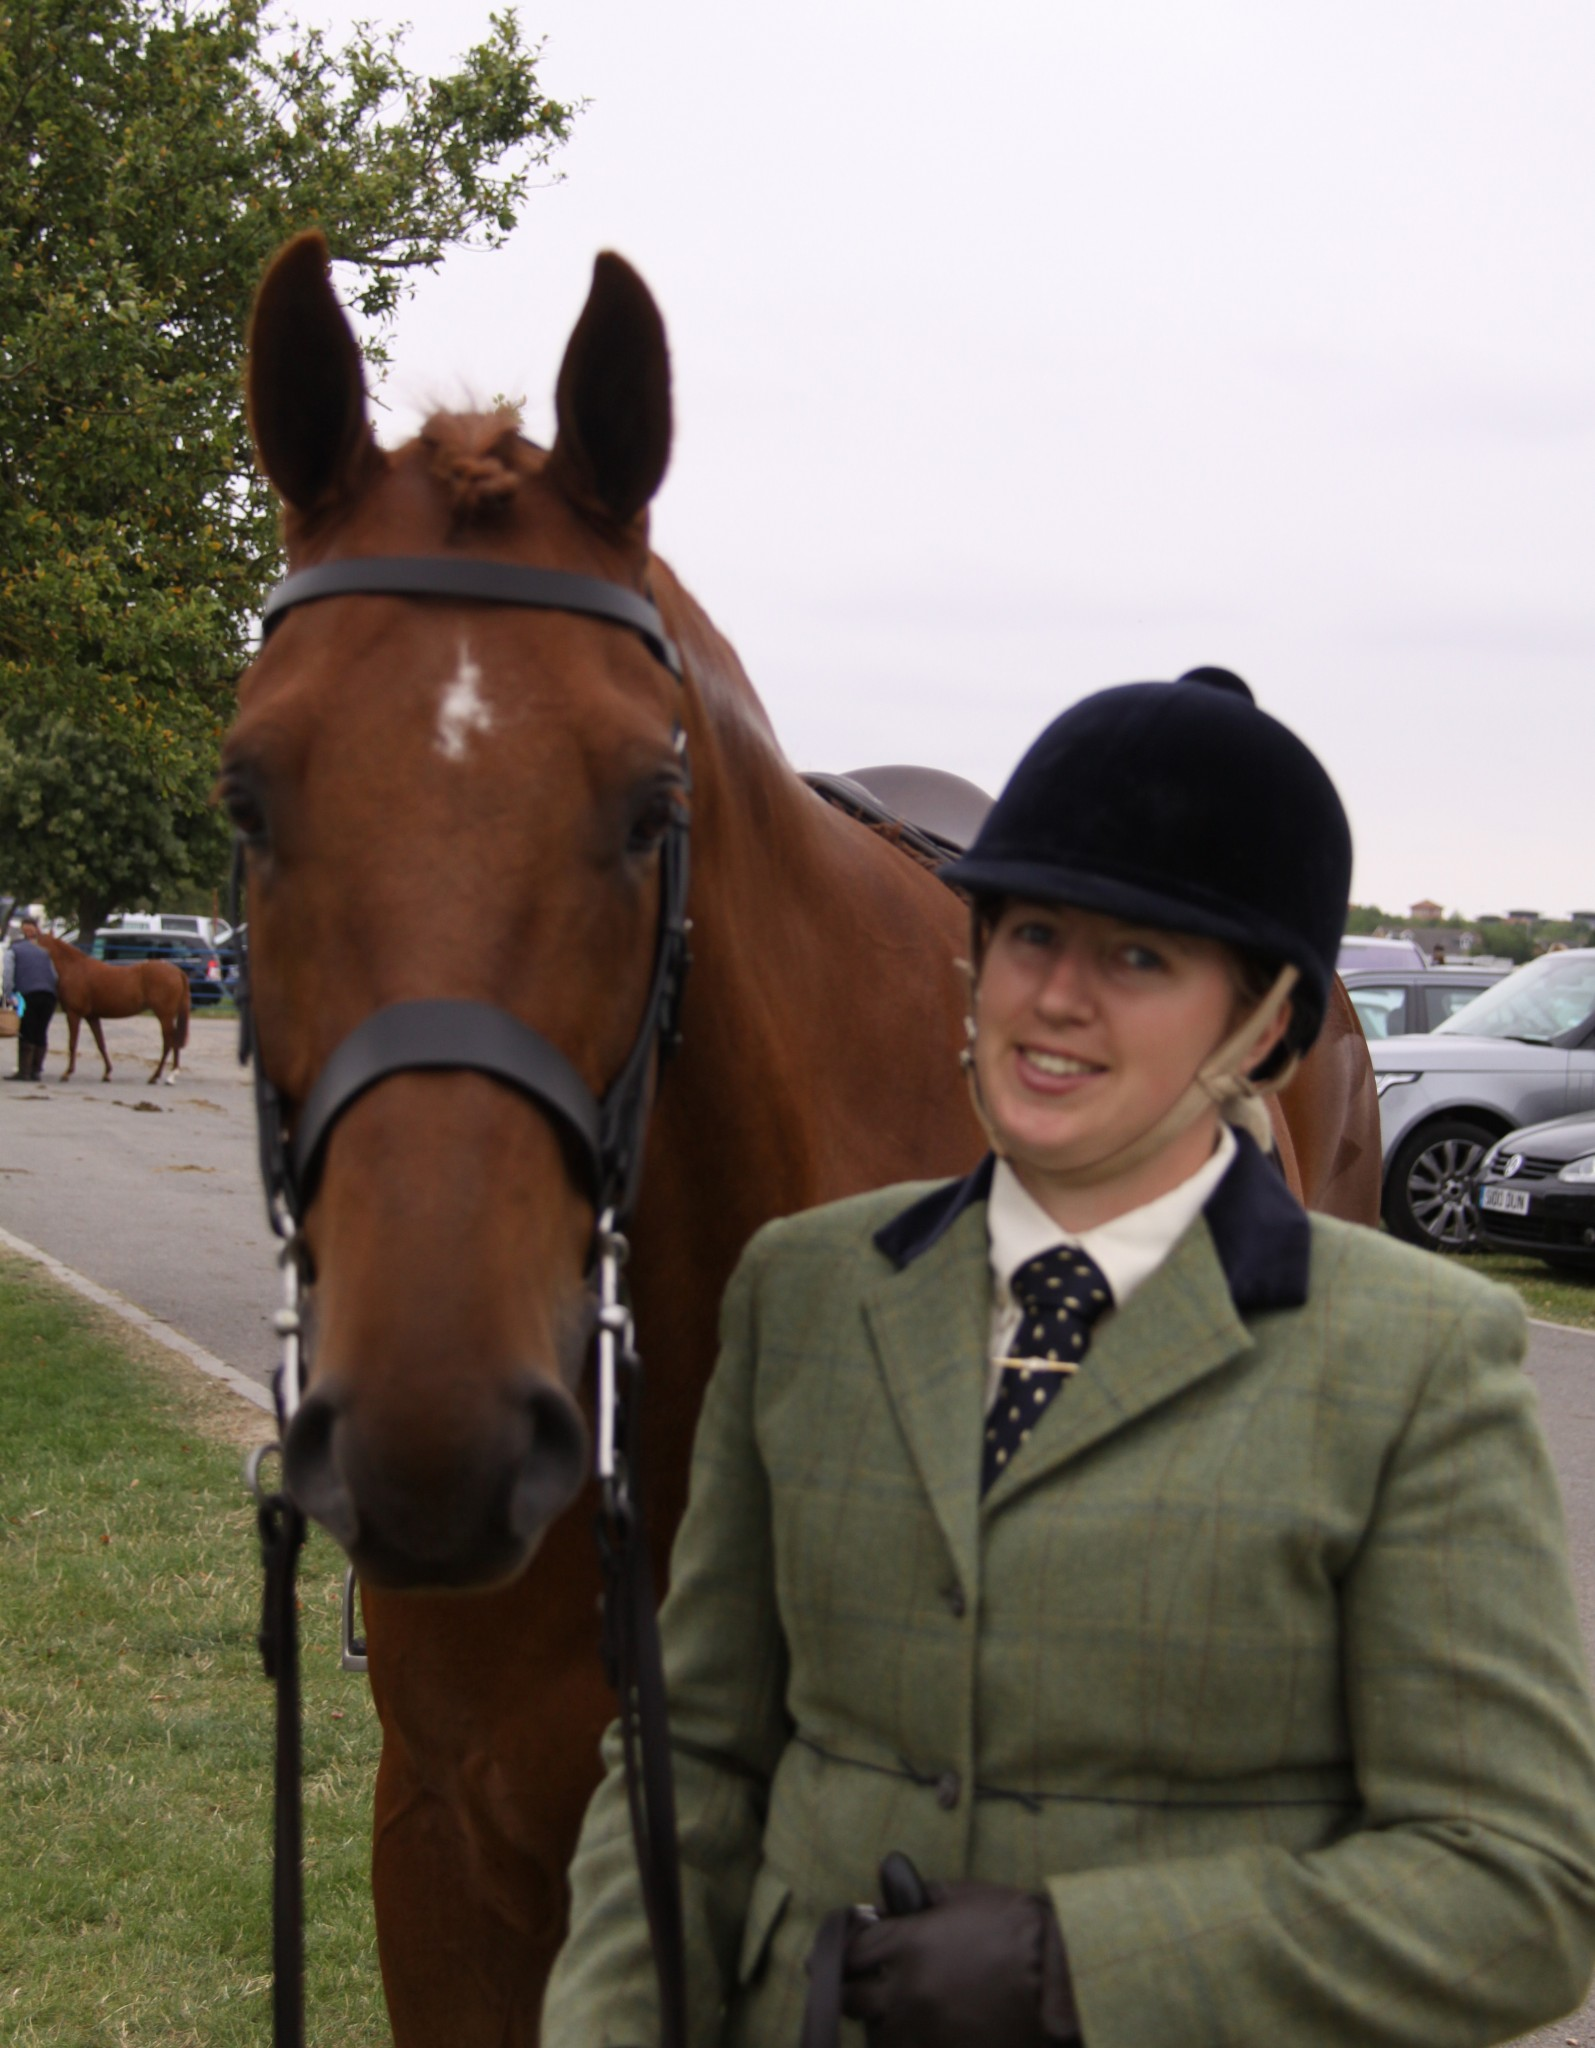 louise jones - A Magic Moment for Louise at Equifest